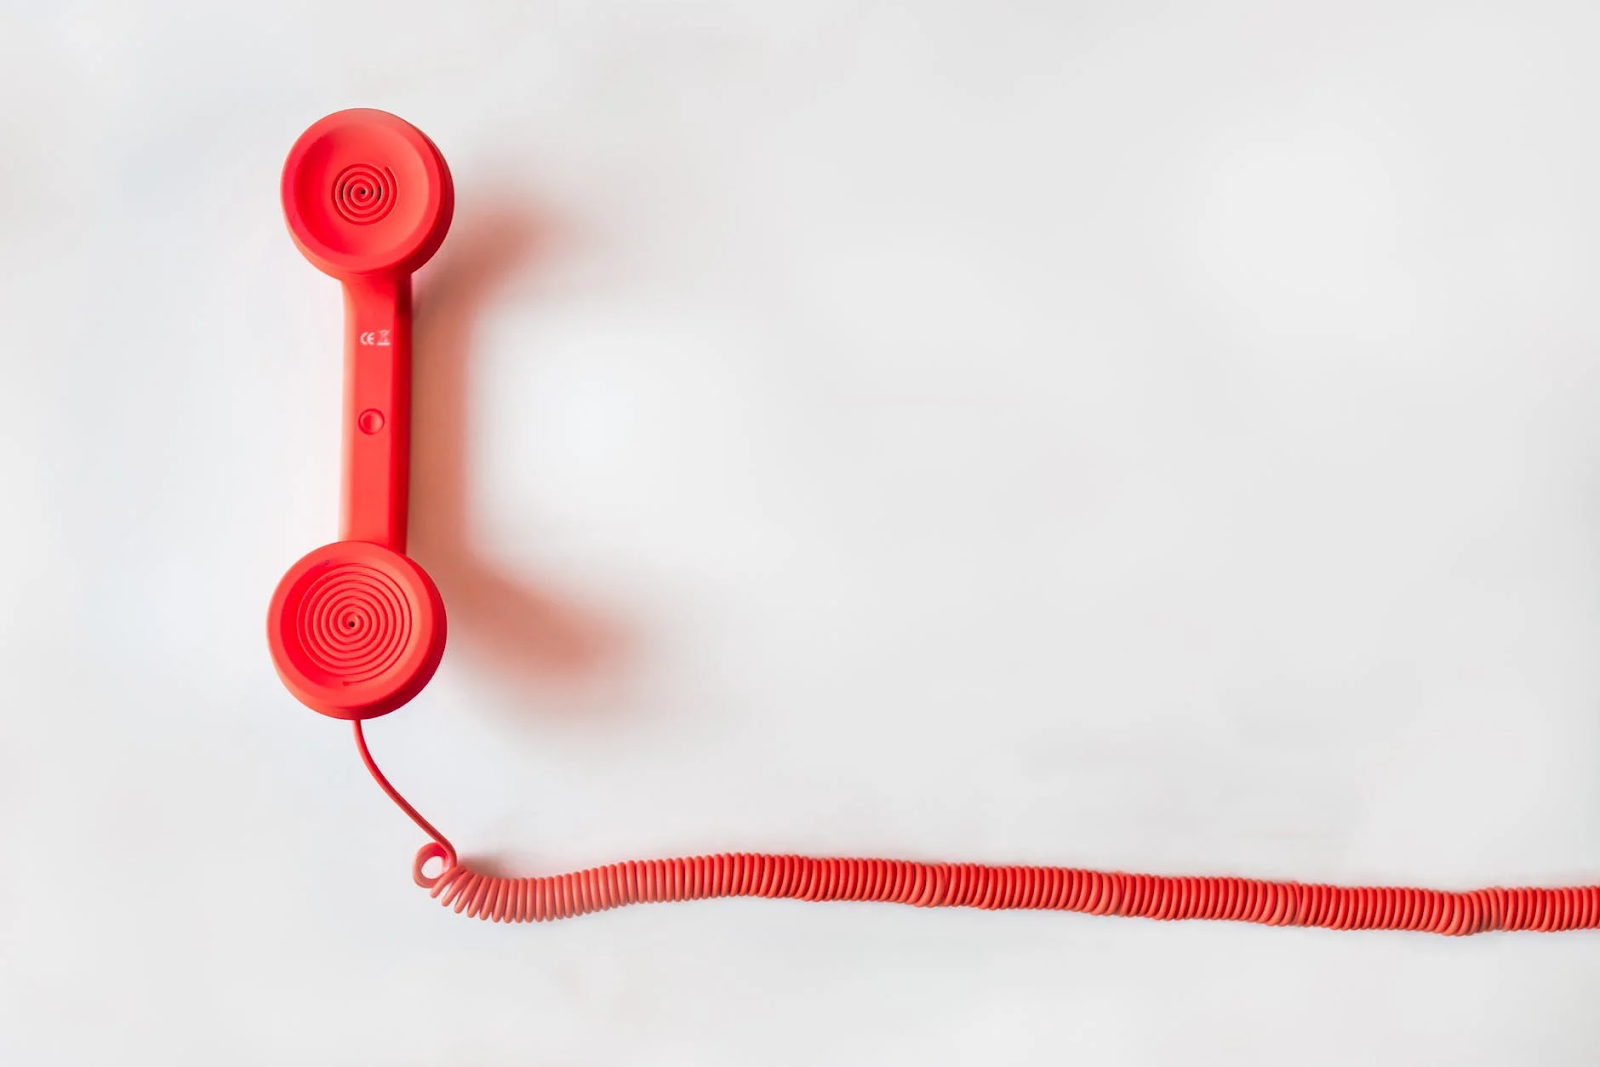 old timey red telephone on a white background